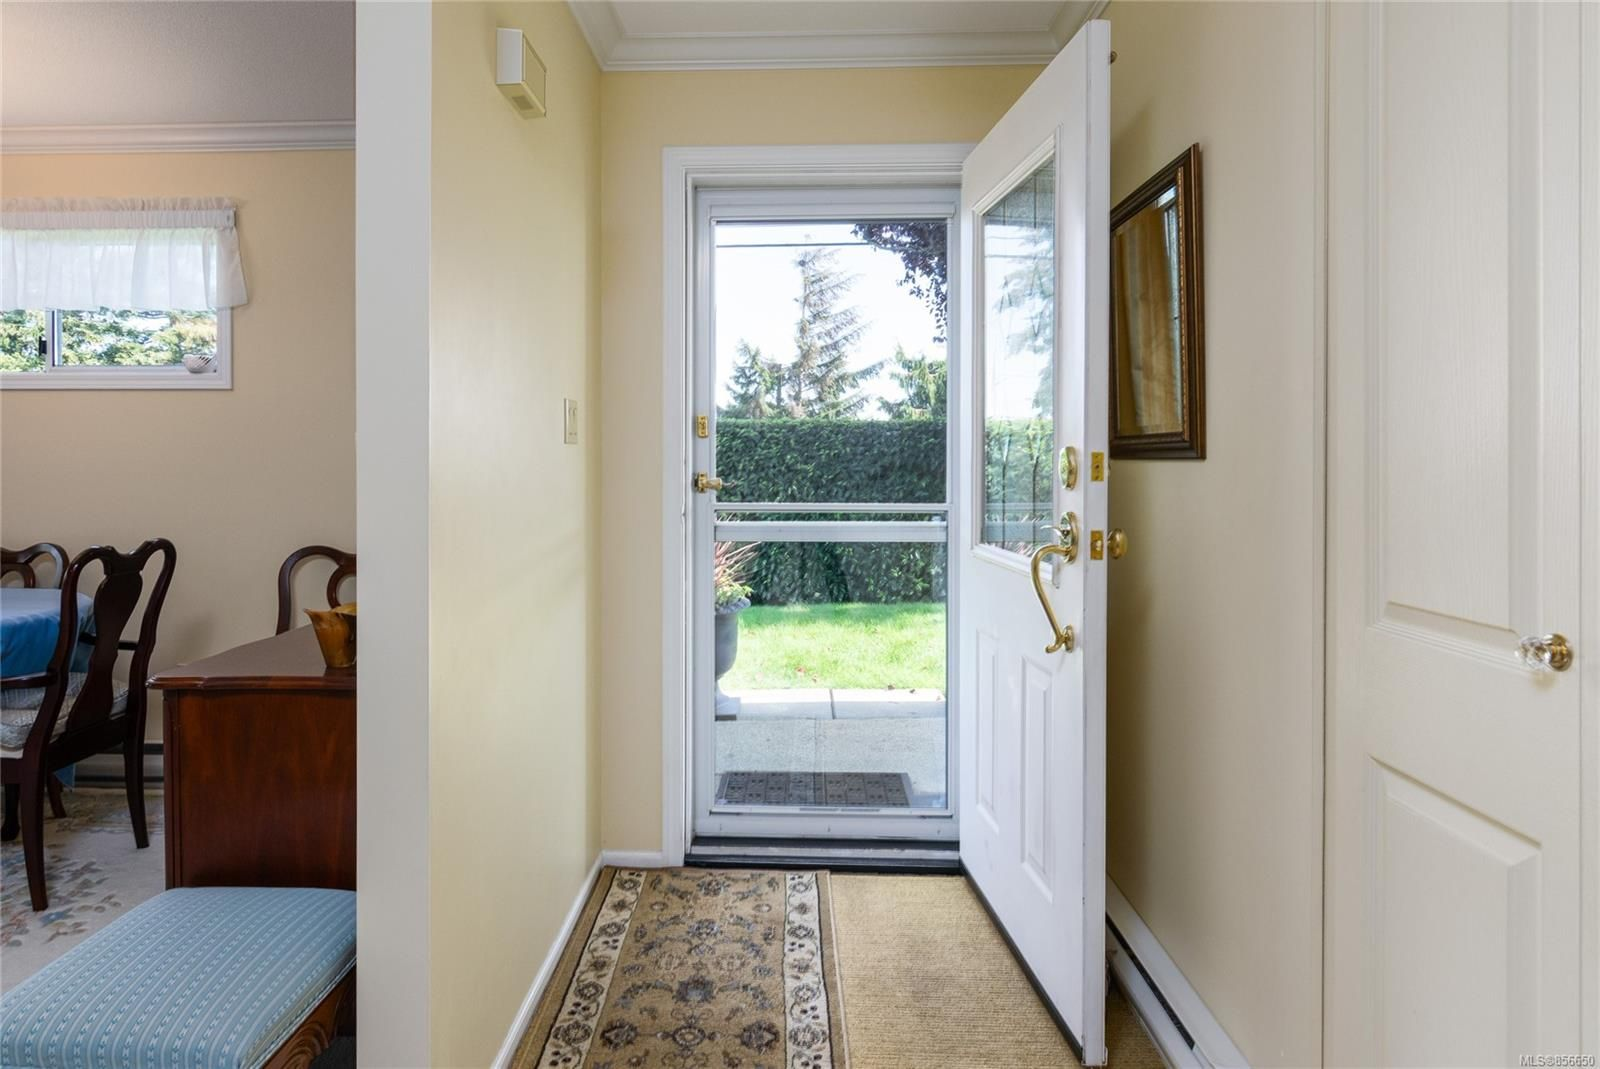 Photo 3: Photos: 4 305 Blower Rd in : PQ Parksville Row/Townhouse for sale (Parksville/Qualicum)  : MLS®# 856650